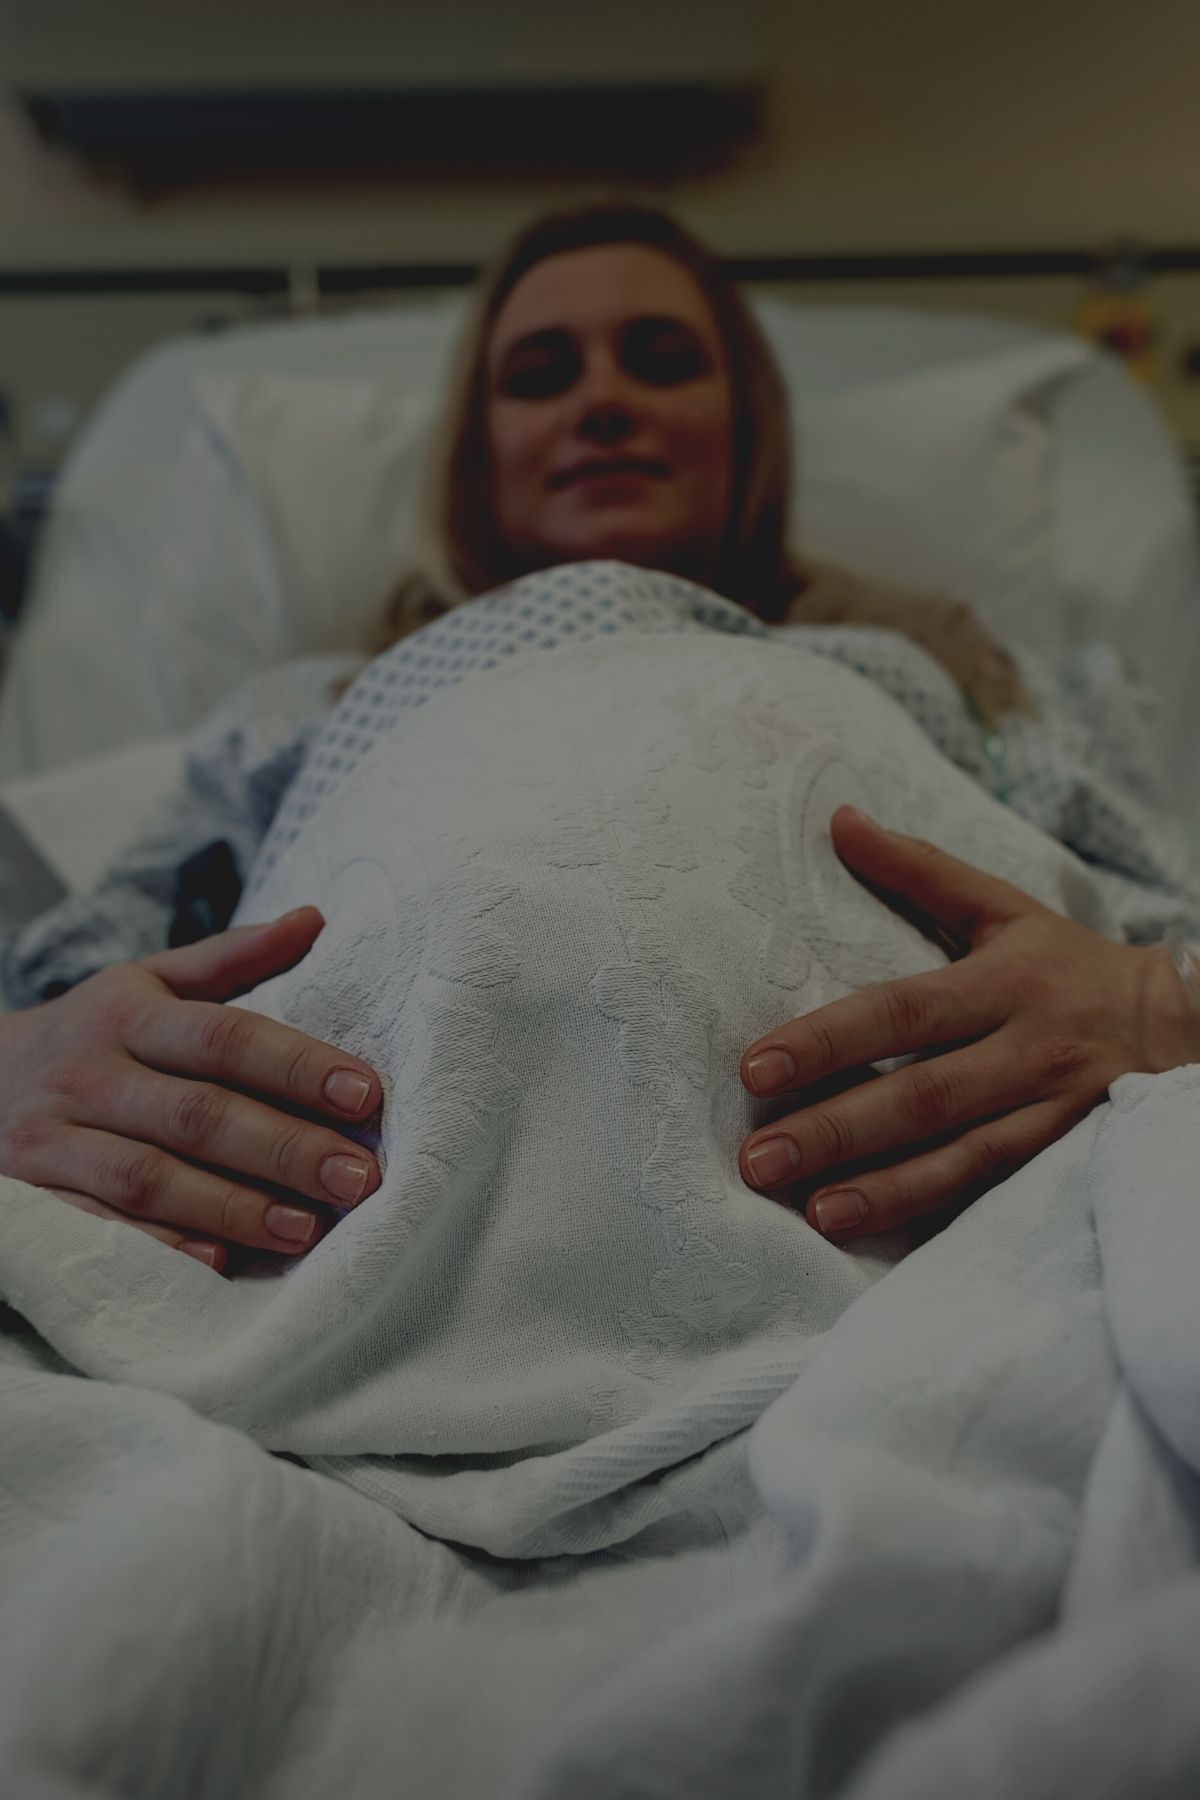 Pregnant woman prepares for birth on hospital bed in dimmed delivery room.